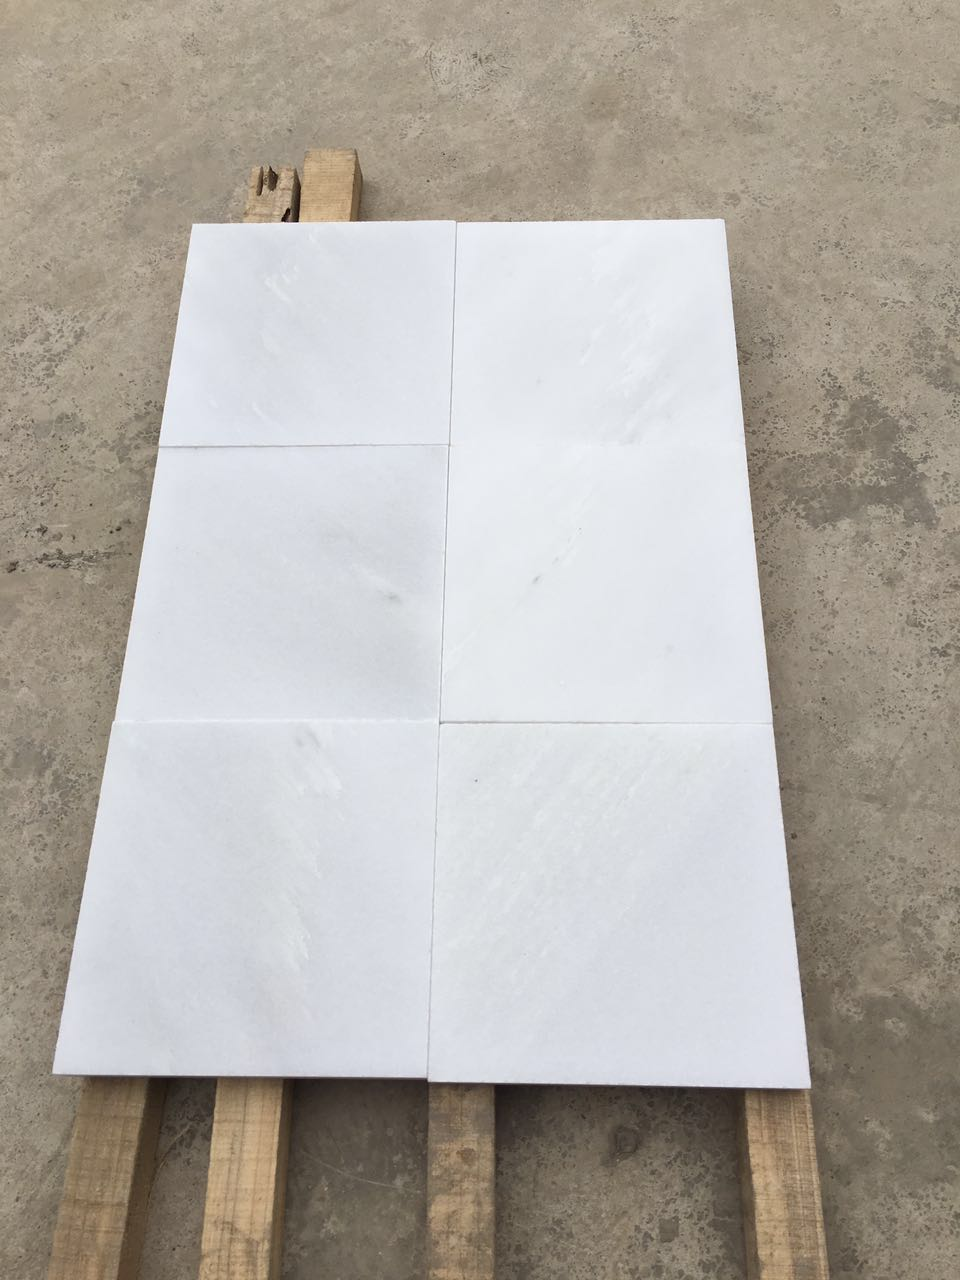 Sichuan White Marble Tiles